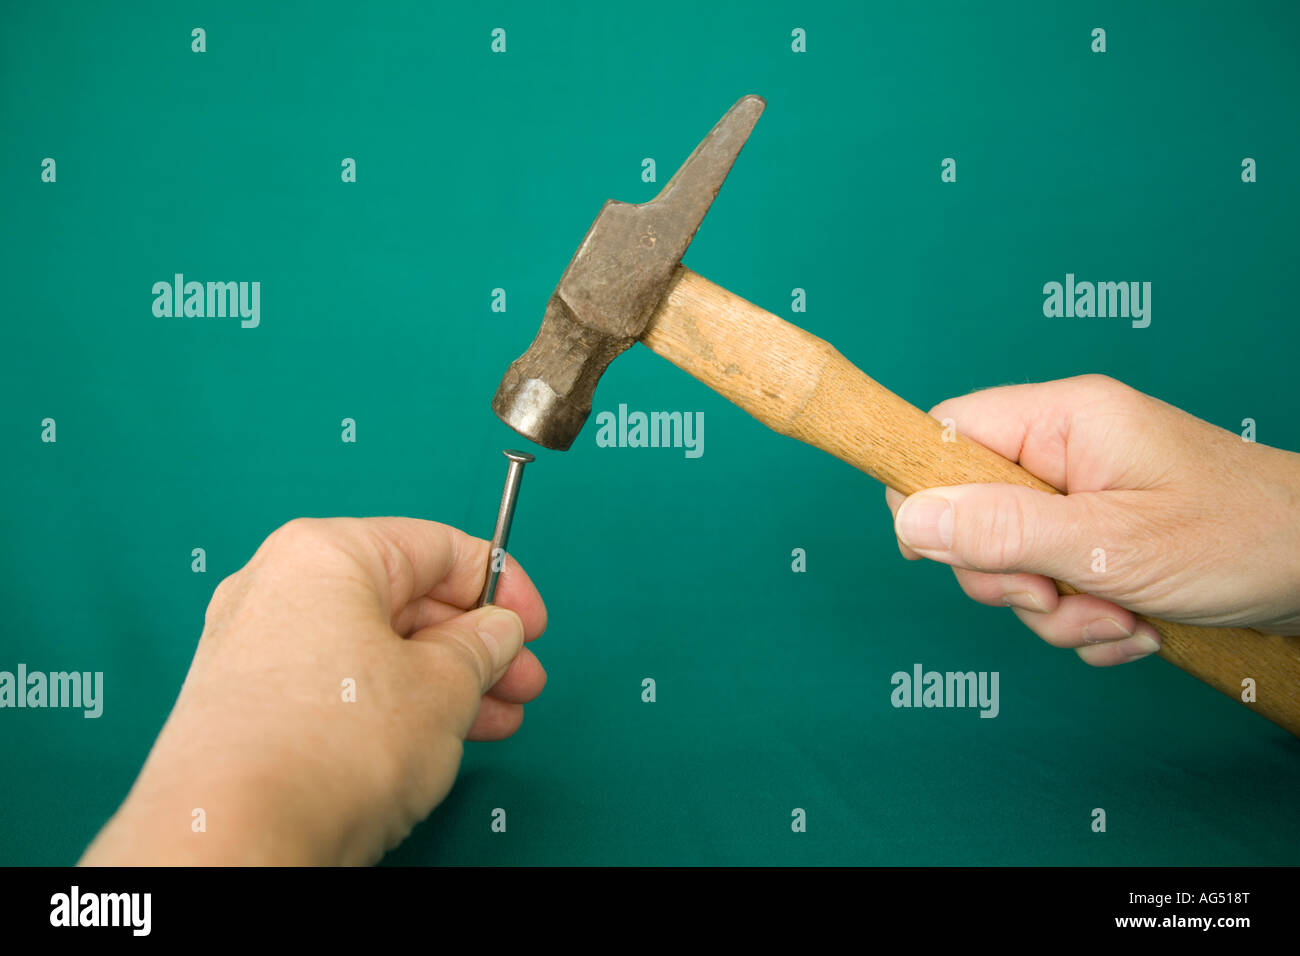 STUDIO Hitting the nail on the head with a hammer Stock Photo ...